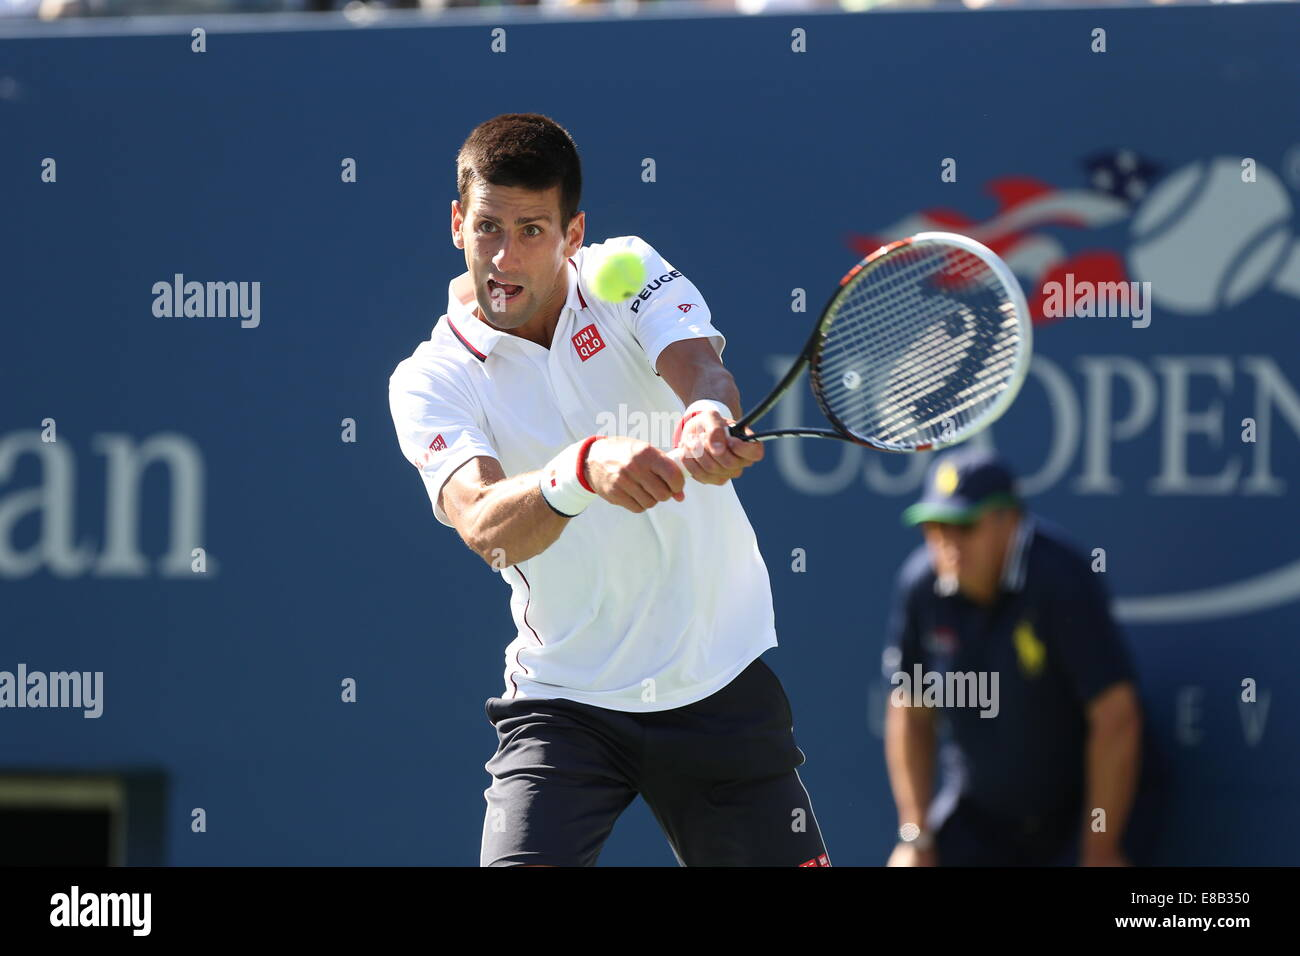 Novak Djokovic (SRB) in action at the US Open 2014 Championships in New York,USA. - Stock Image